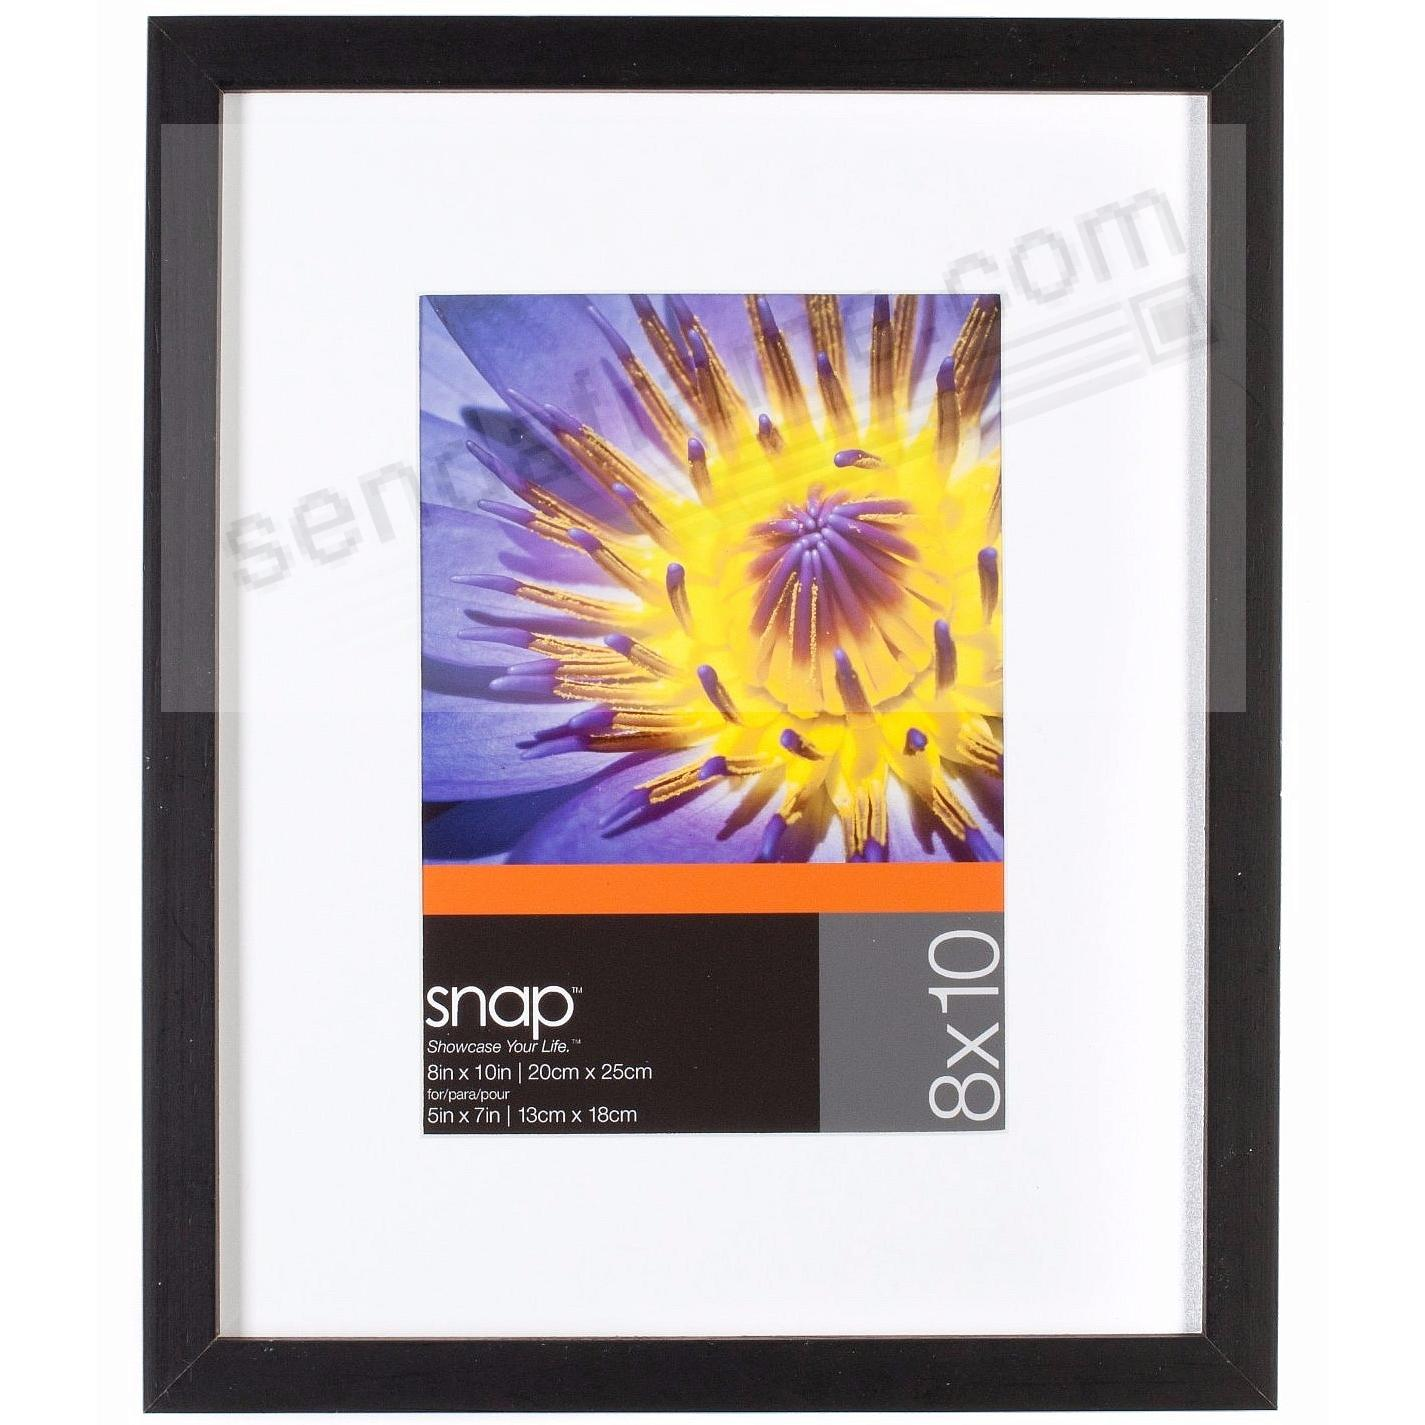 Black Wall + Easel Frame 8x10 matted to 5x7 by SNAP®